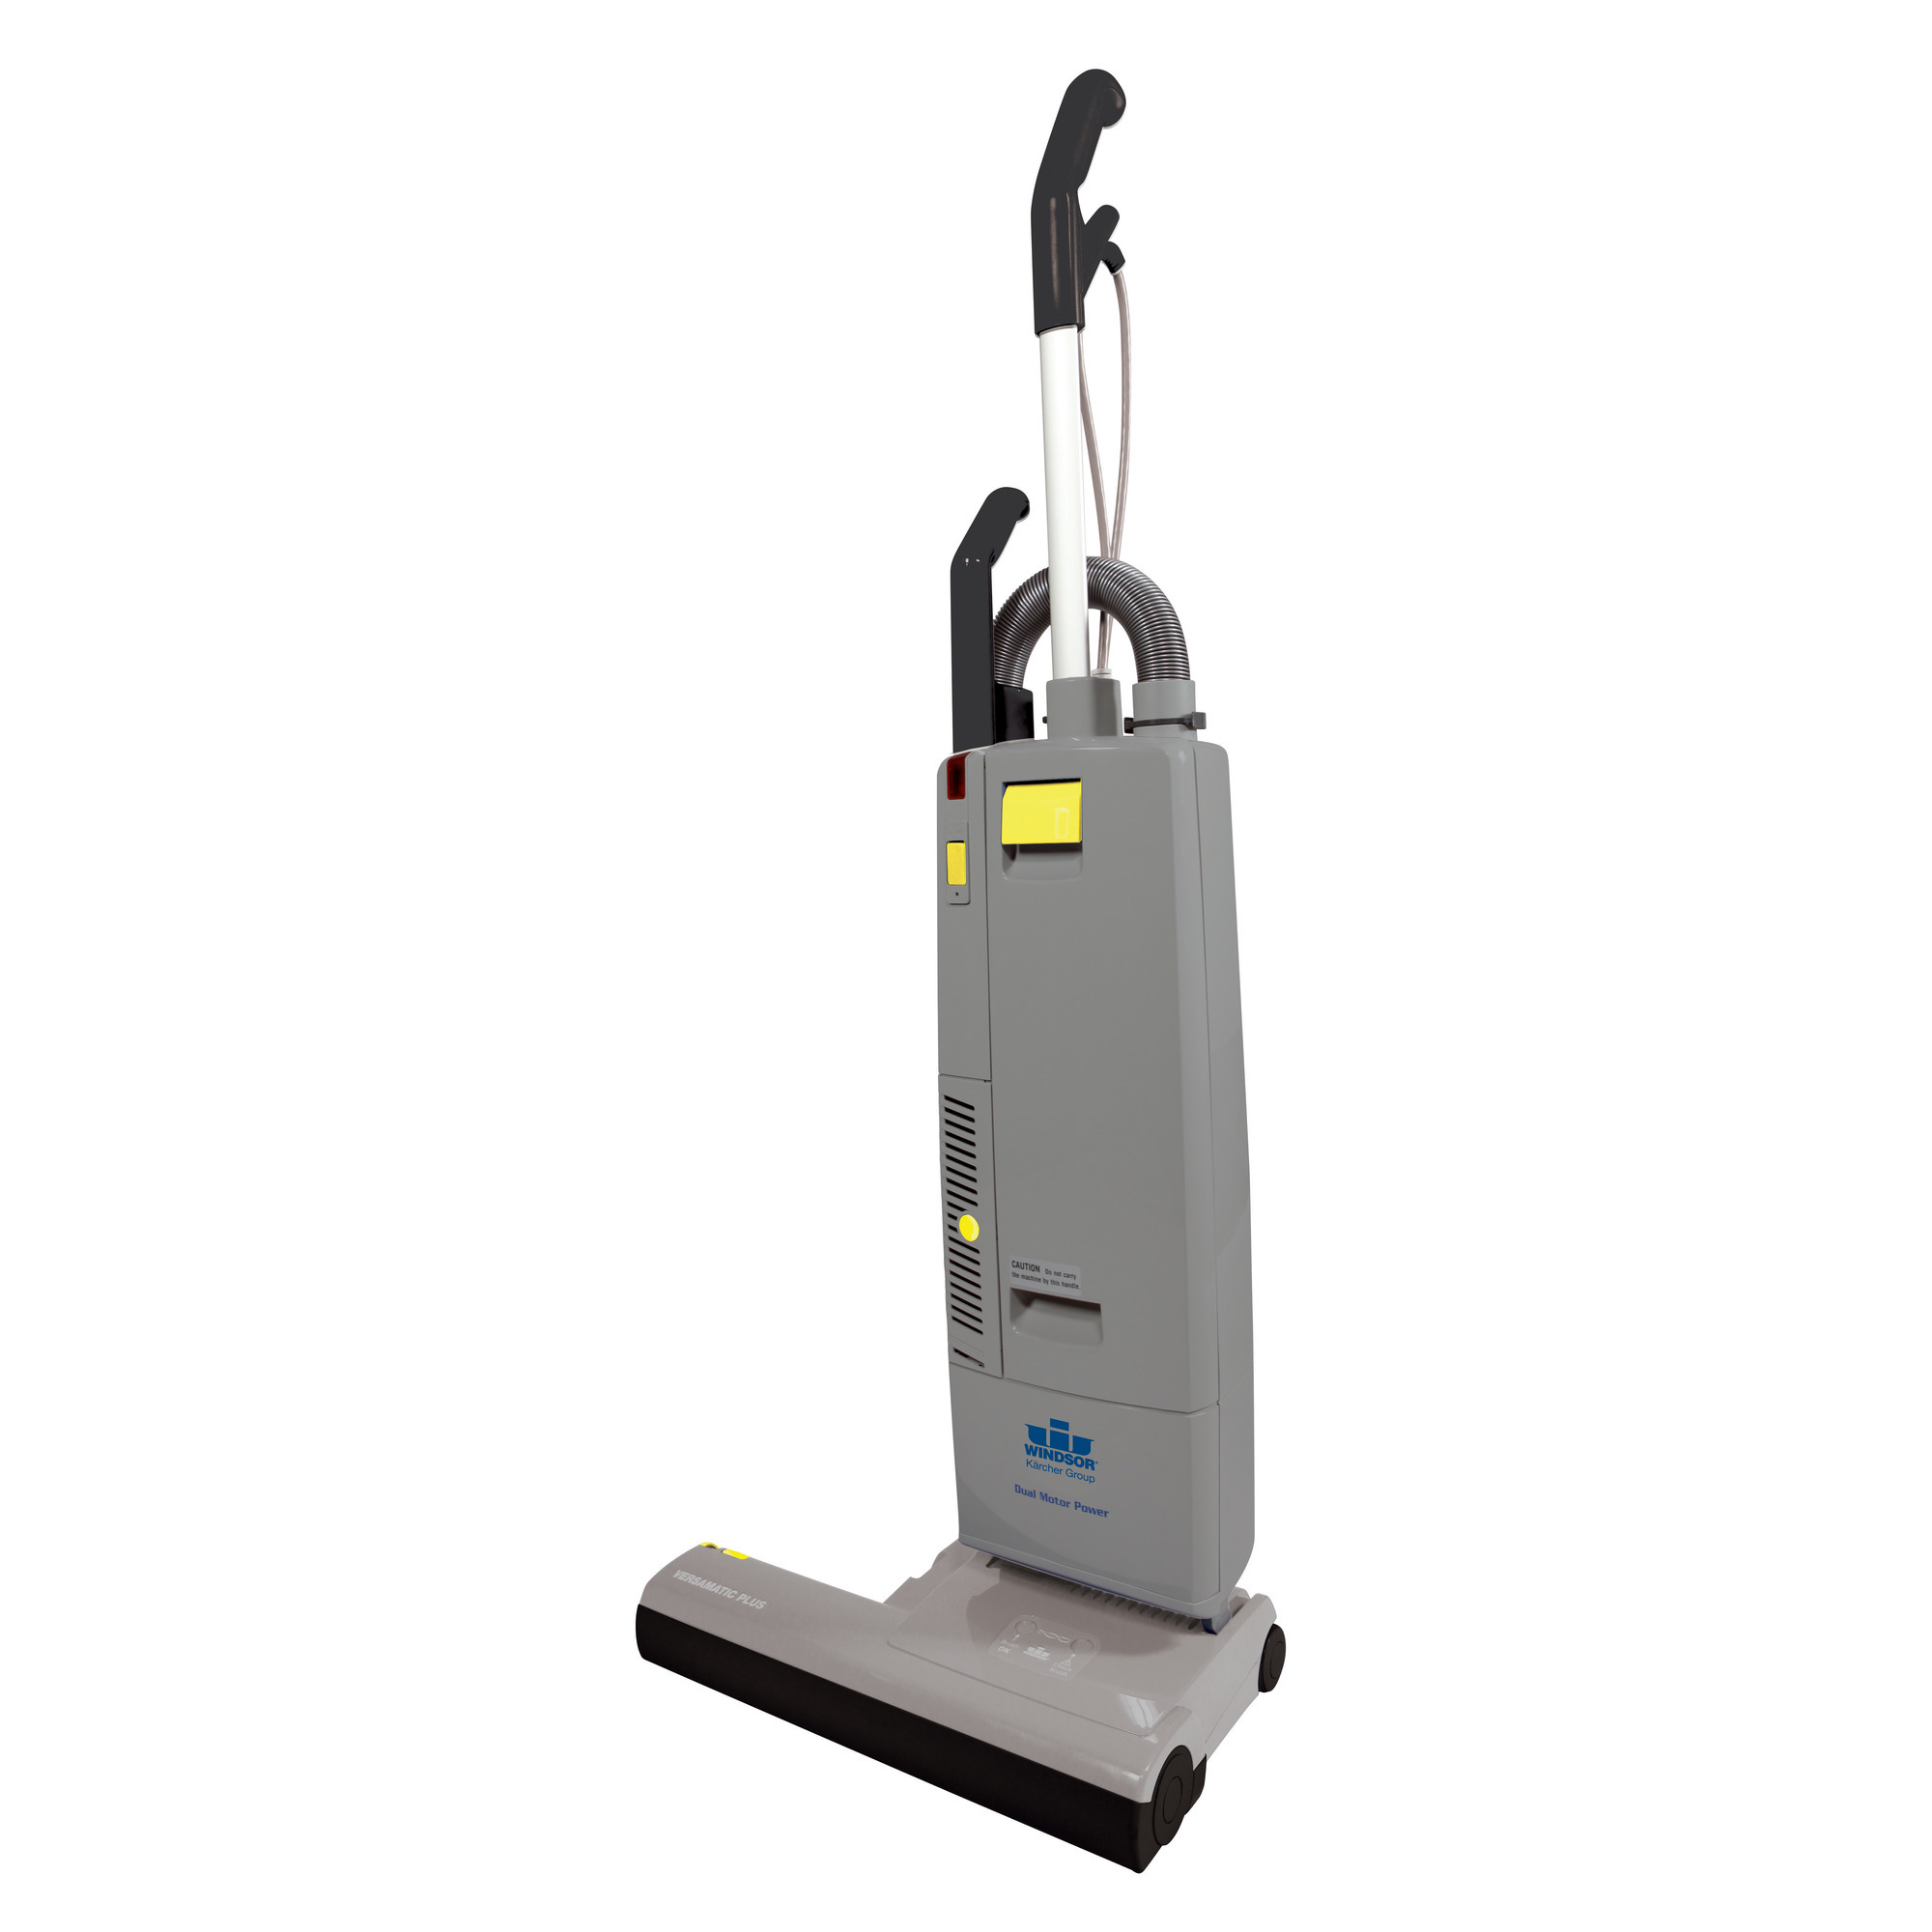 near me orbital rental sale reviews scrubbers speed nashville tomcat shop concept beautiful for floor size photo cordless of scrubber gallon home bissell full commercial floors kitchen